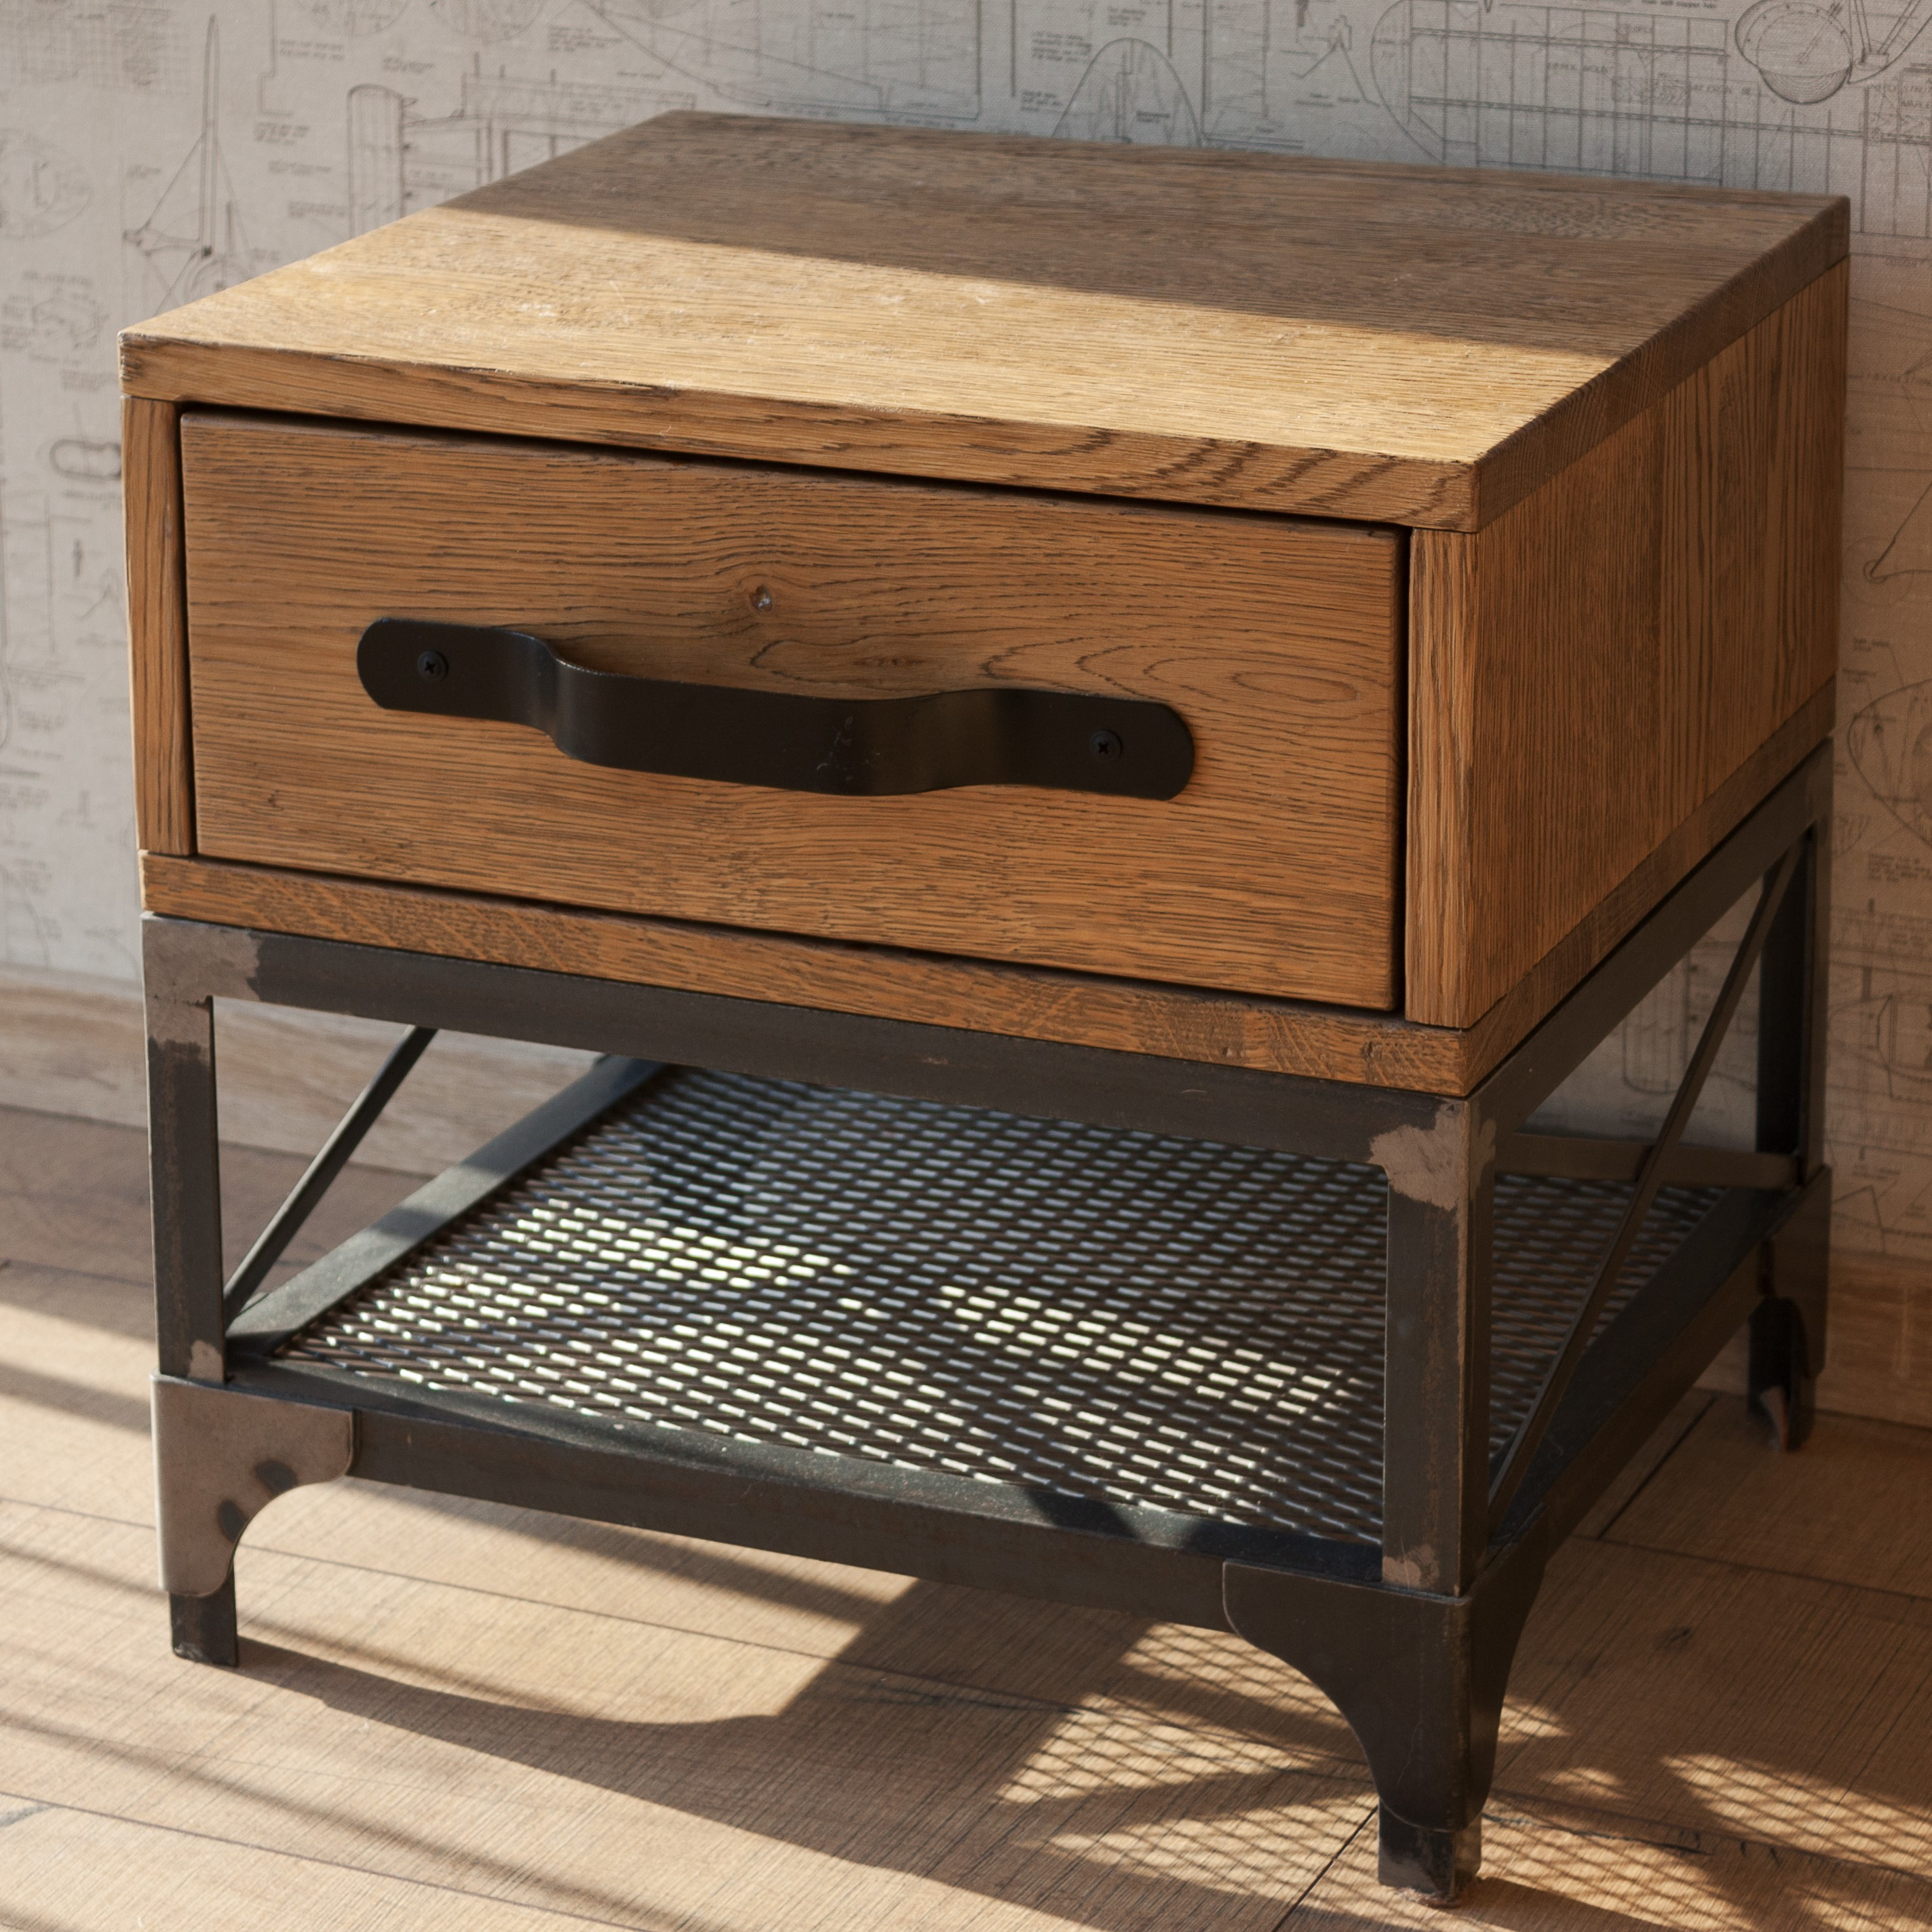 Bedside table LF12-1